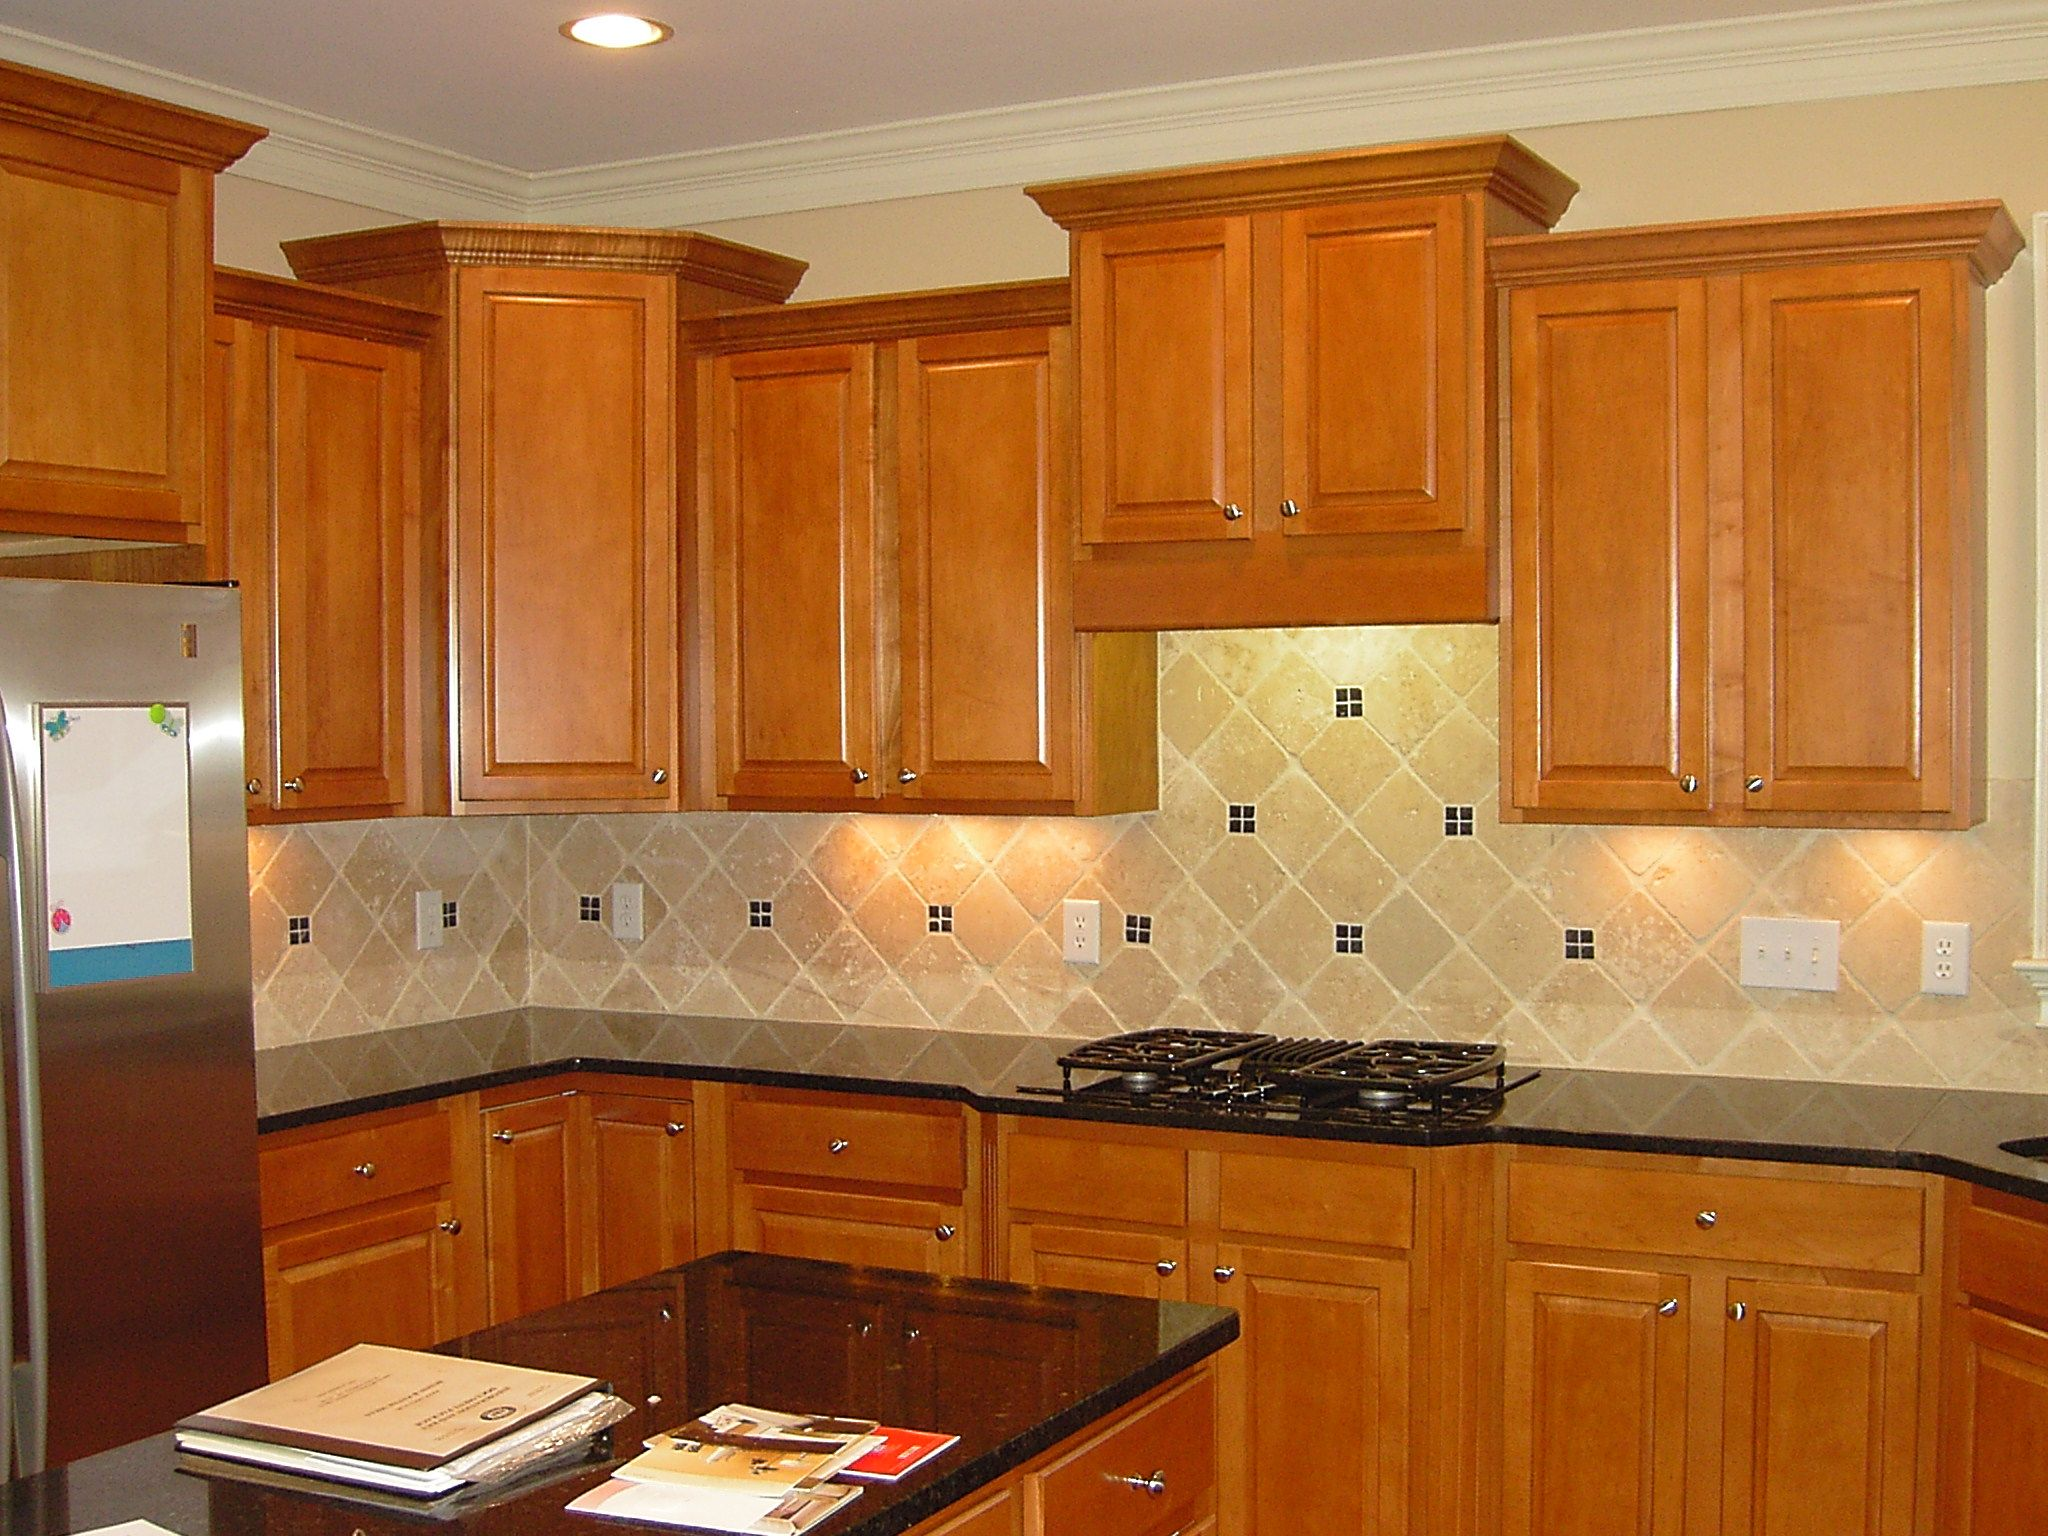 Kitchen Design Ideas With Oak Cabinets | Home Design Ideas